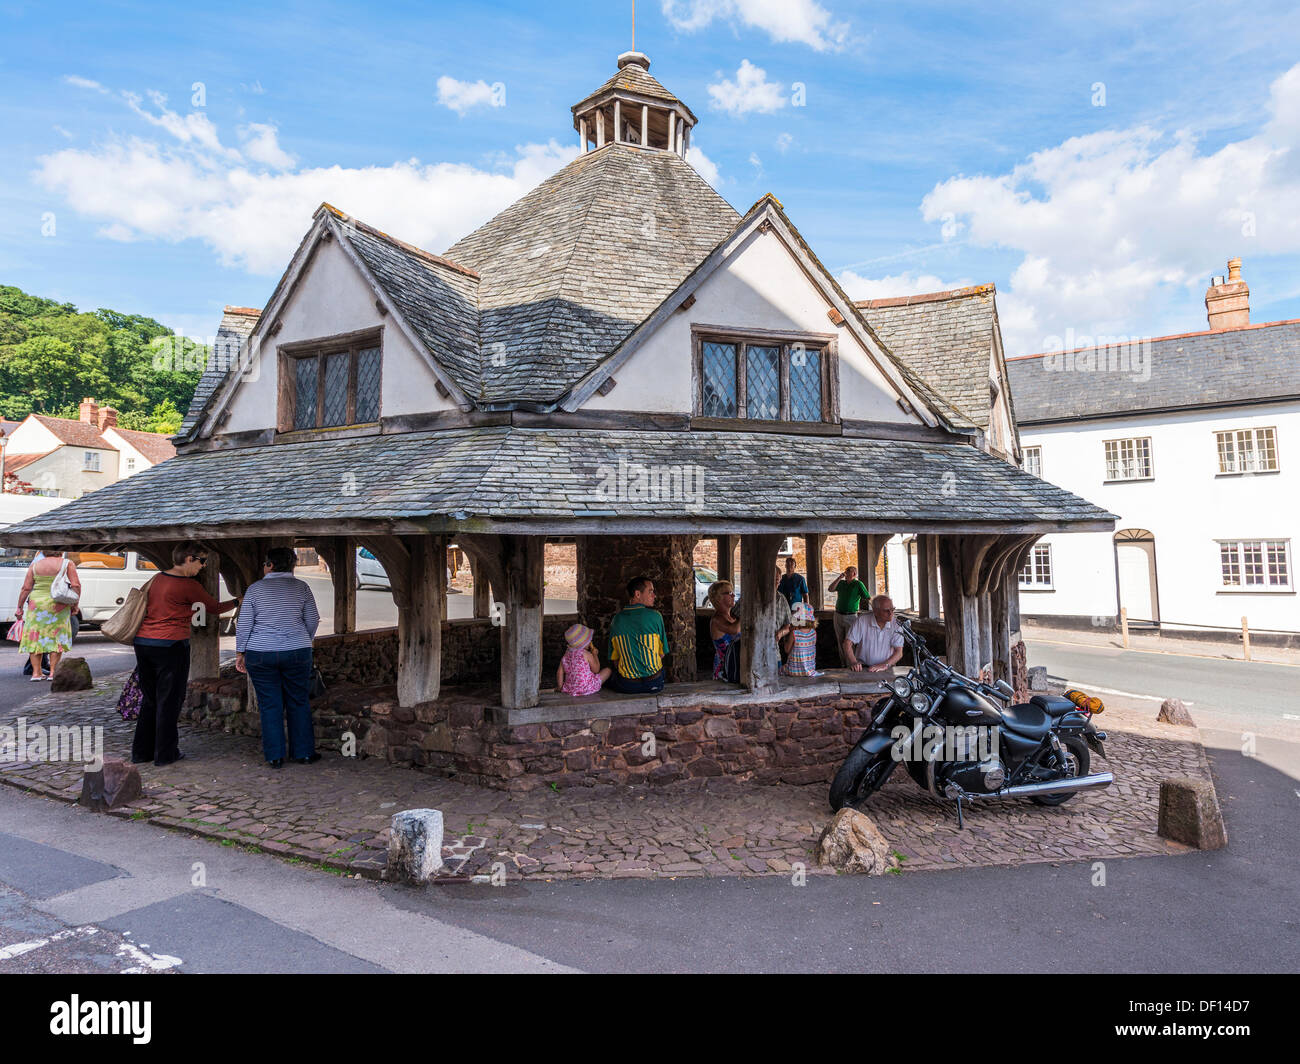 Dunster, Somerset,England. August 8th 2013. The Yarn Market building, built in approximately 1590. A medieval centre for wool. - Stock Image